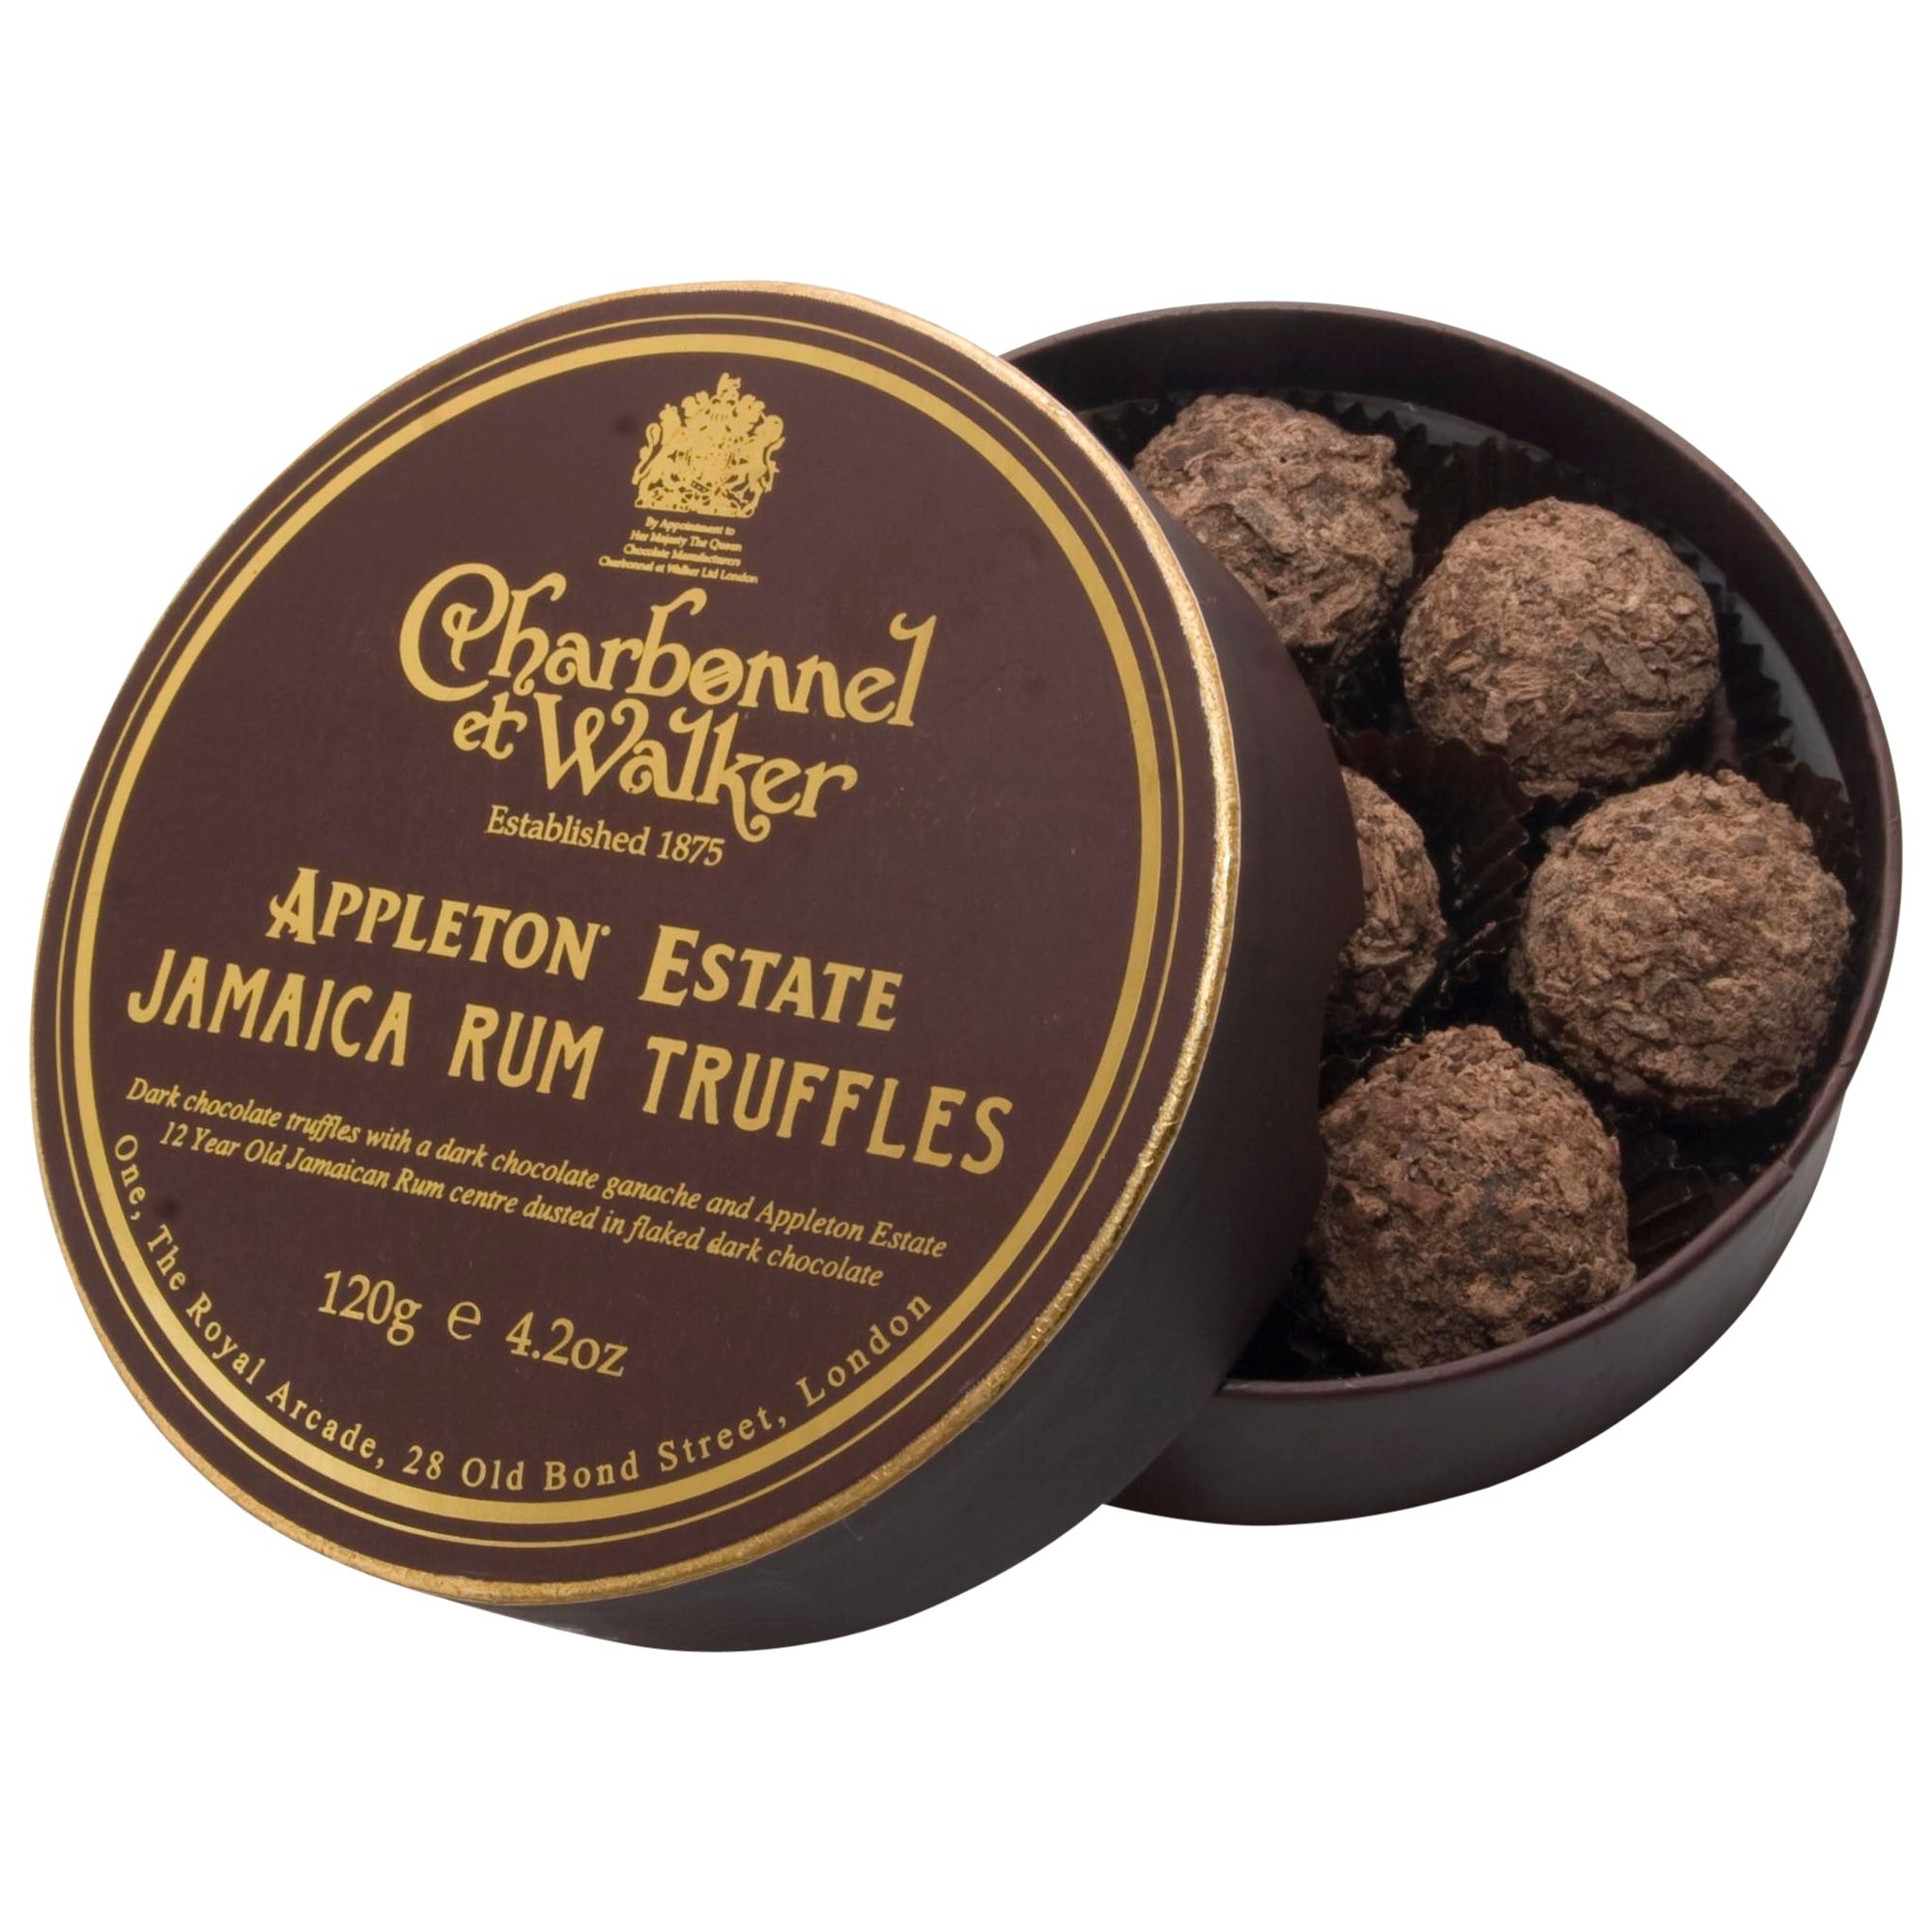 Charbonnel Et Walker Appleton Estate Rum Truffles, 120g